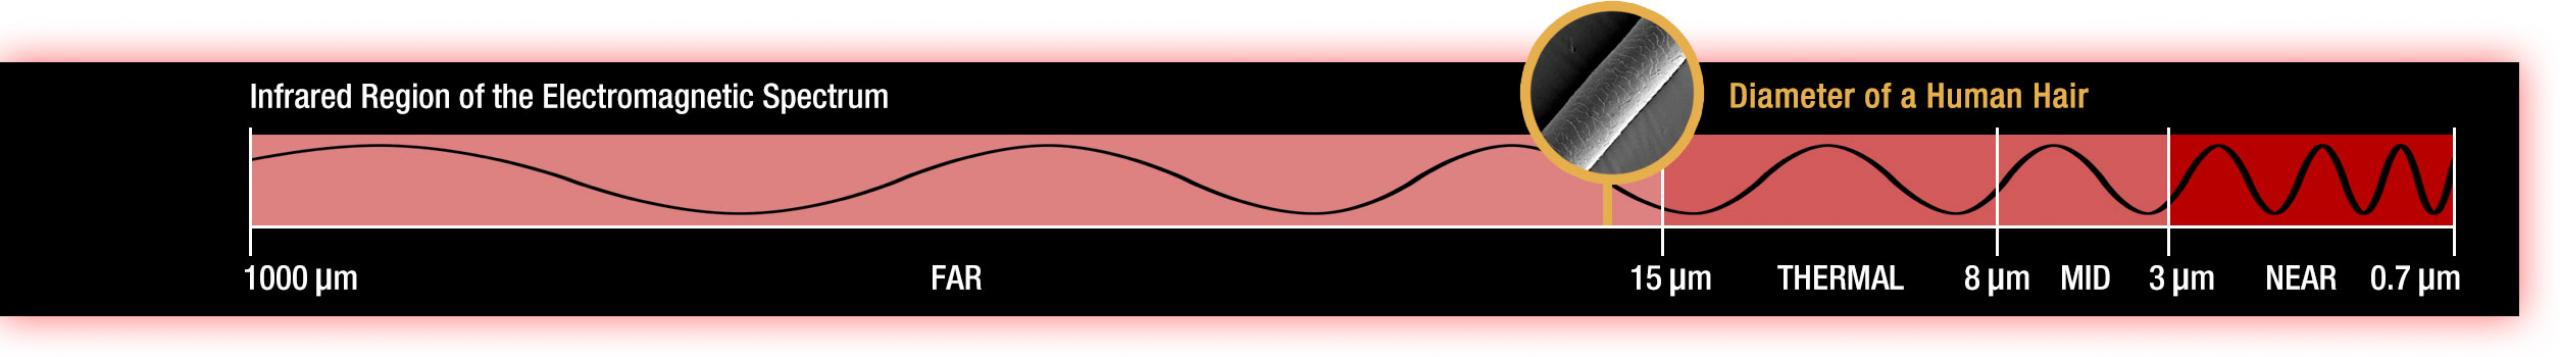 Infrared Waves Science Mission Directorate Diagram Showing Energy Transfer By Radiation Is Illustration Of An Wave On The Electromagnetic Spectrum